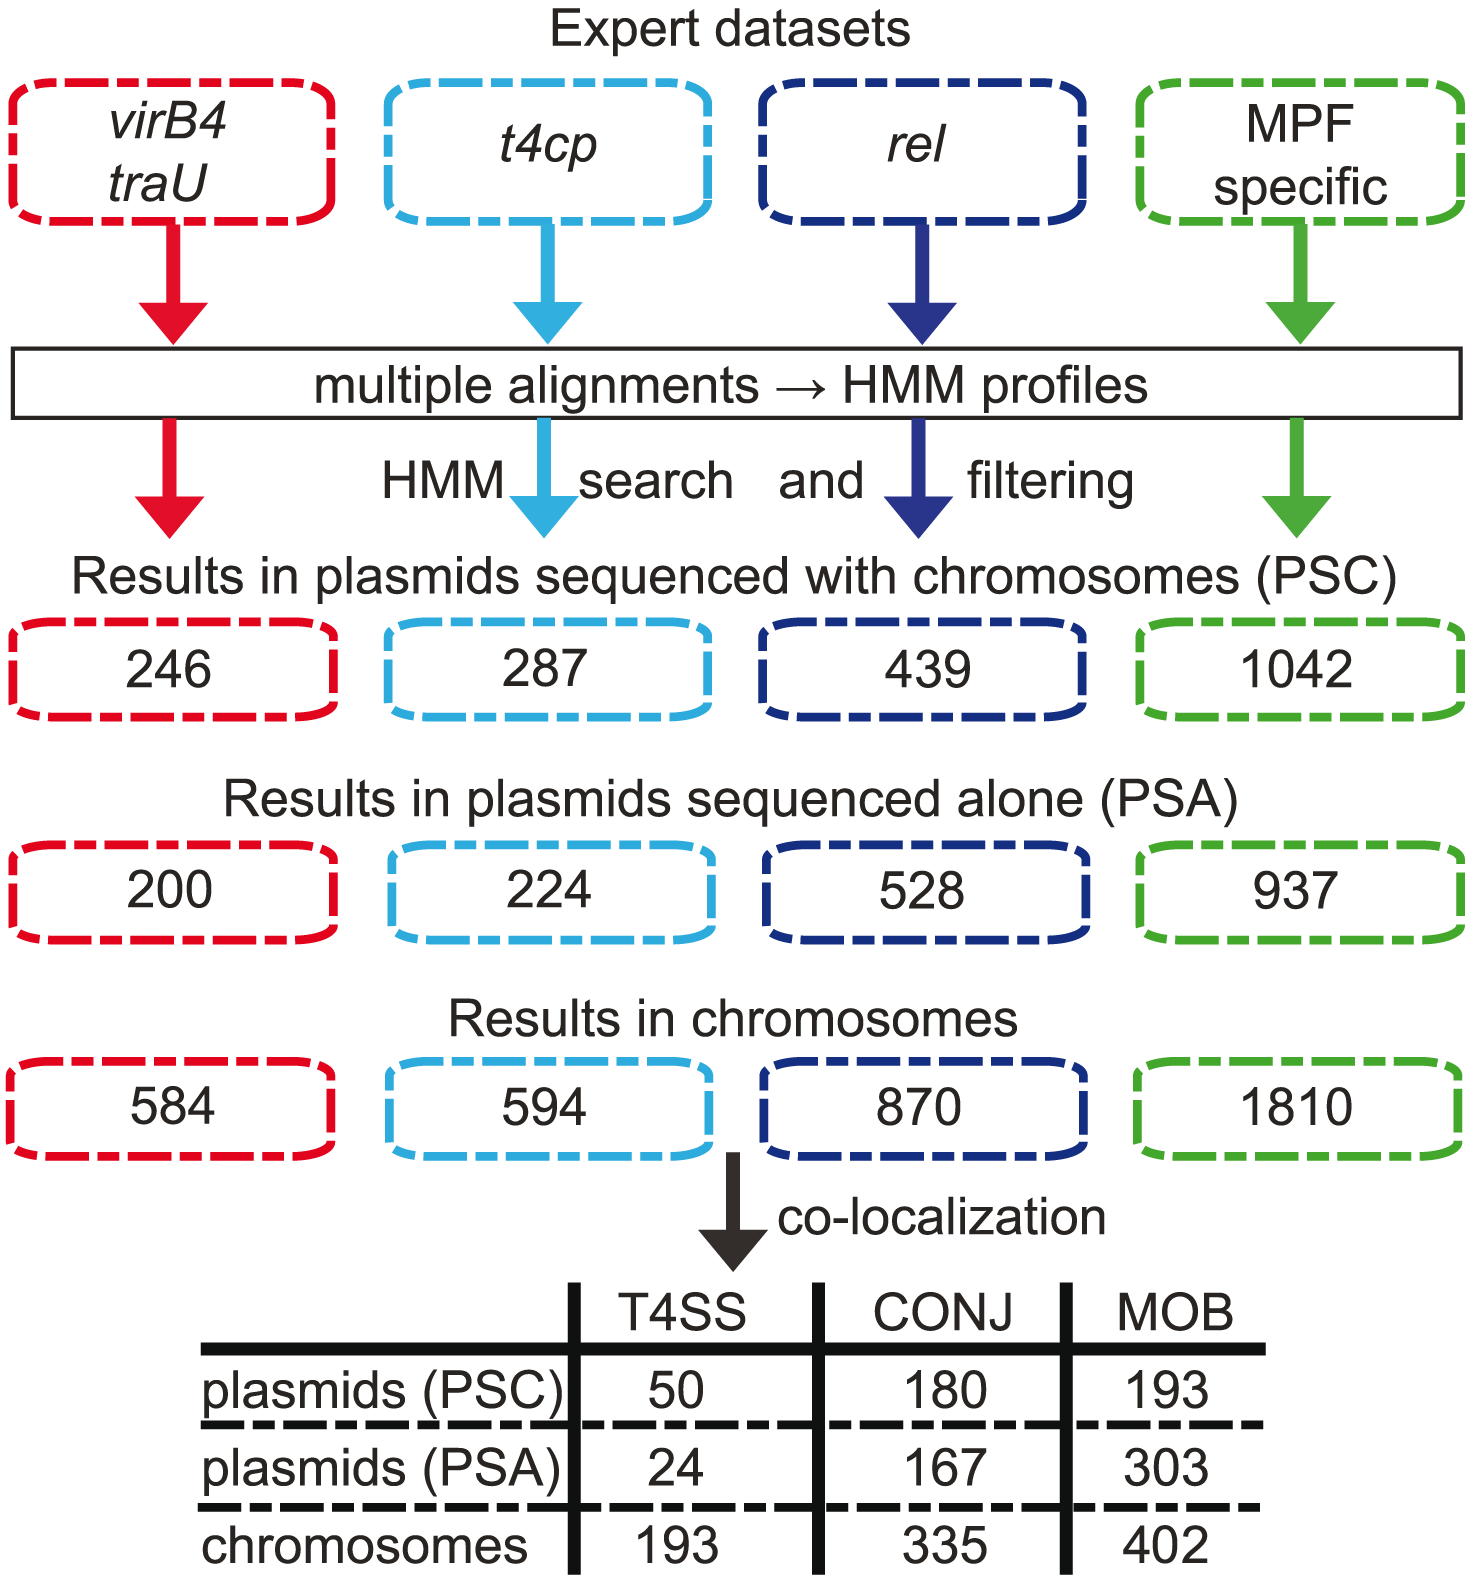 Methods and results of the identification pipeline.